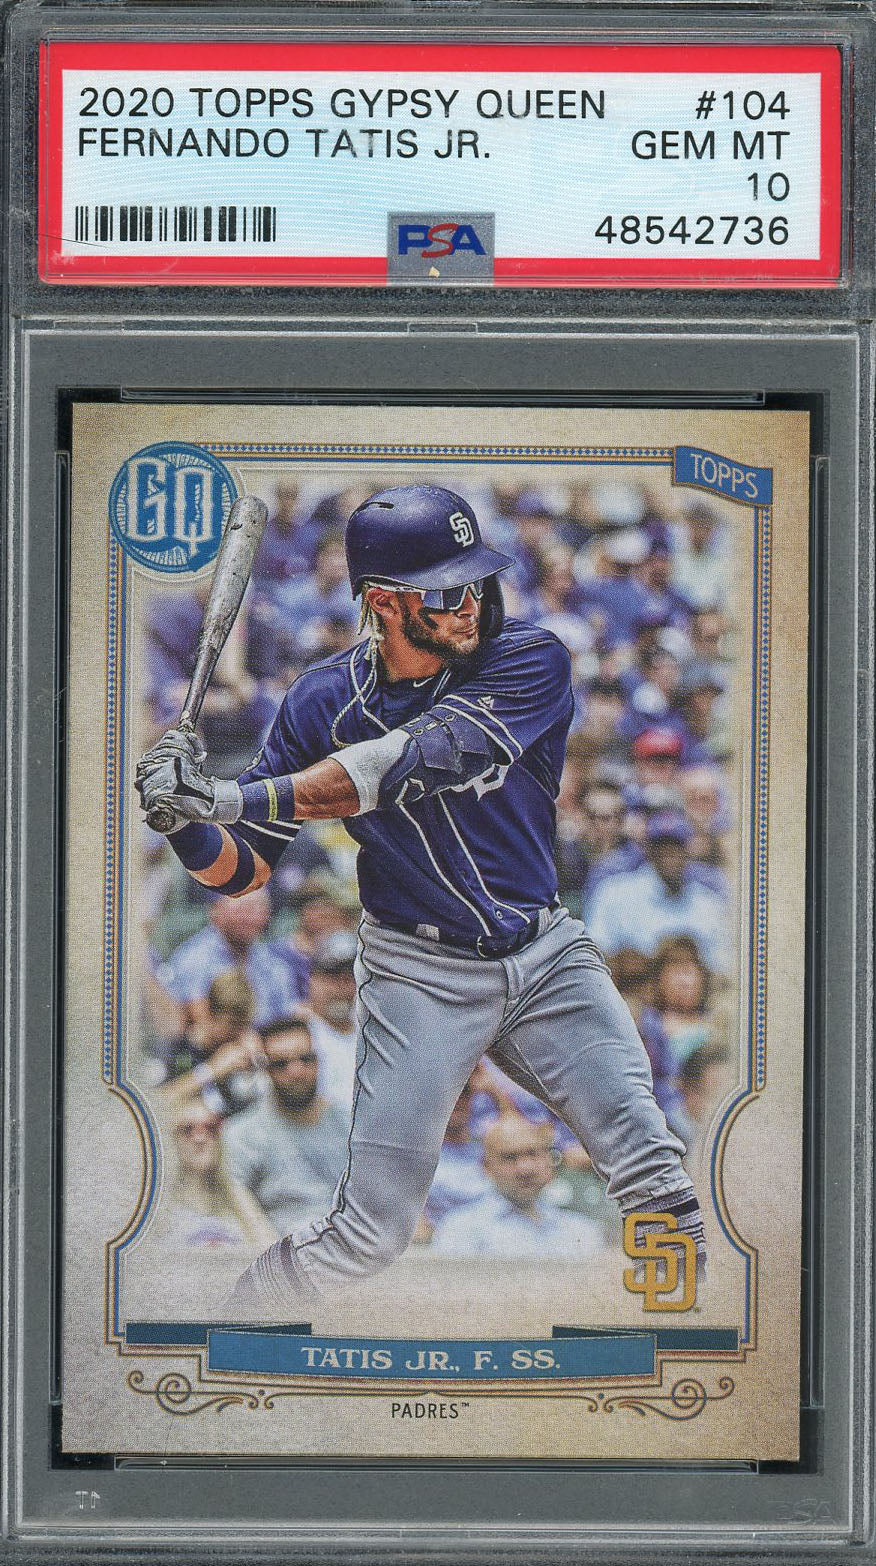 Fernando Tatis Jr San Diego Padres 2020 Topps Gypsy Queen Baseball Card #104 Graded PSA 10 GEM MINT-Powers Sports Memorabilia